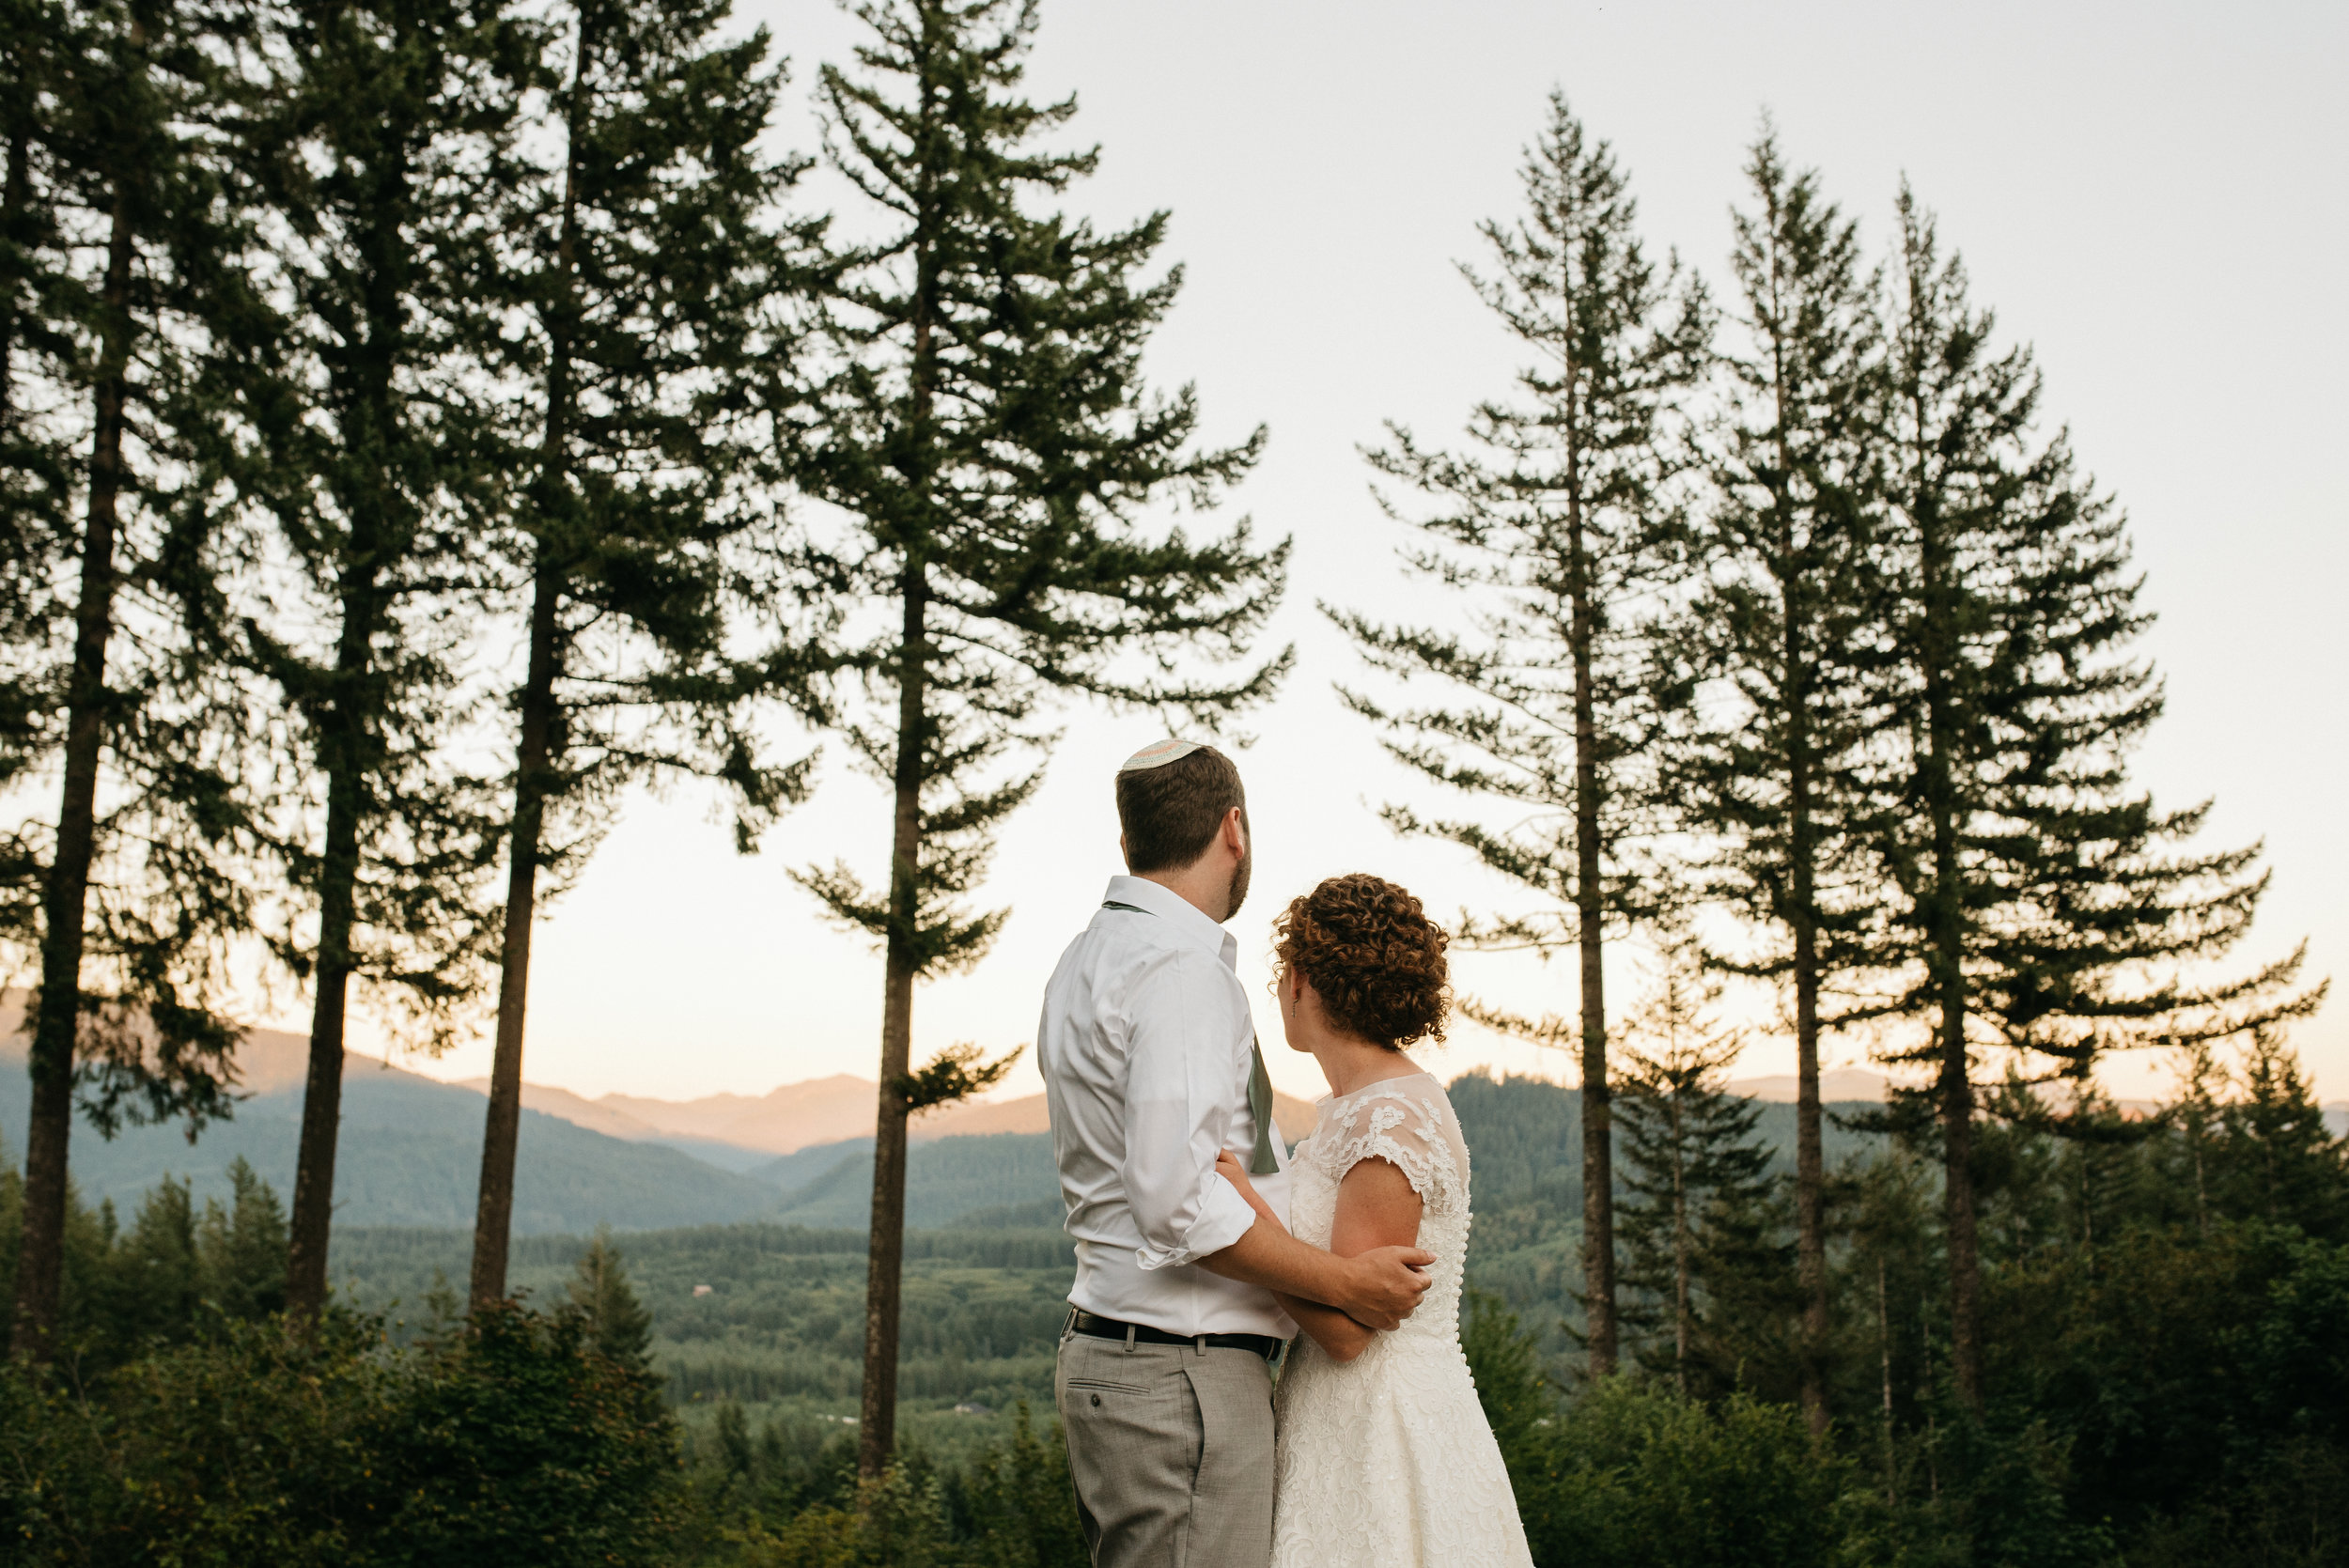 Andy + Becky | Anderson Lodge Ariel, WA